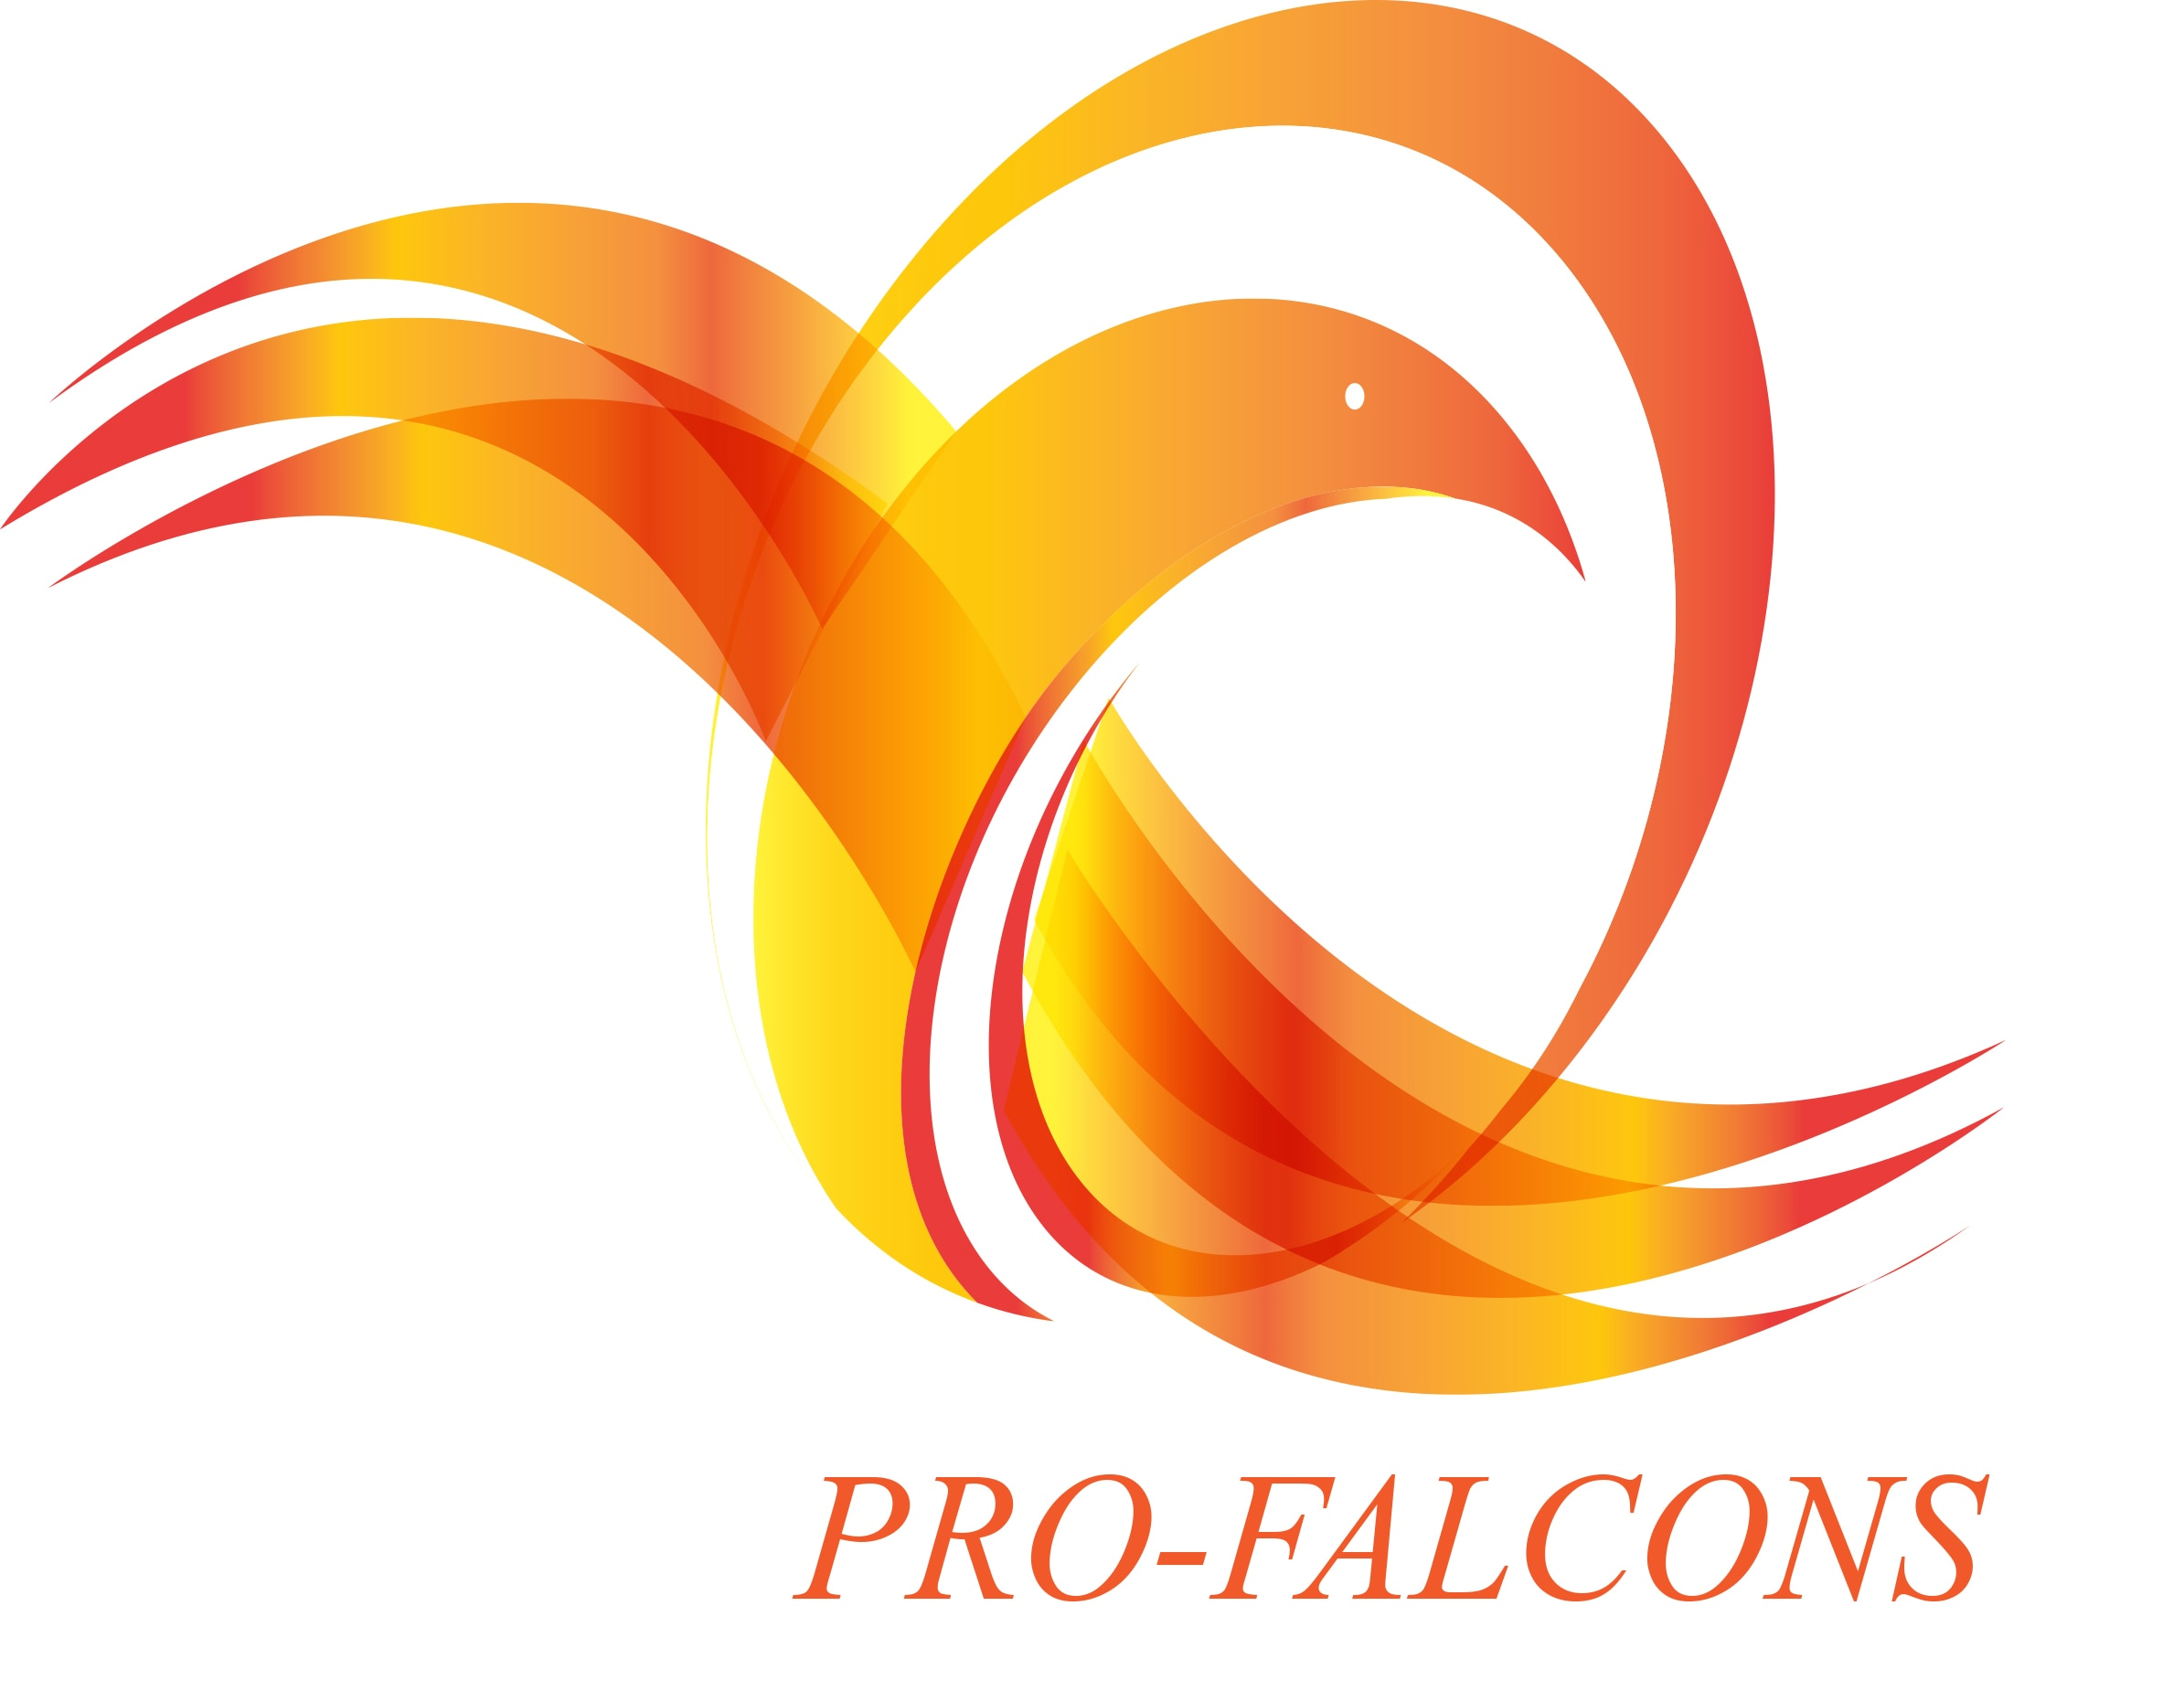 image of Pro Falcons Machinery Manufacturers